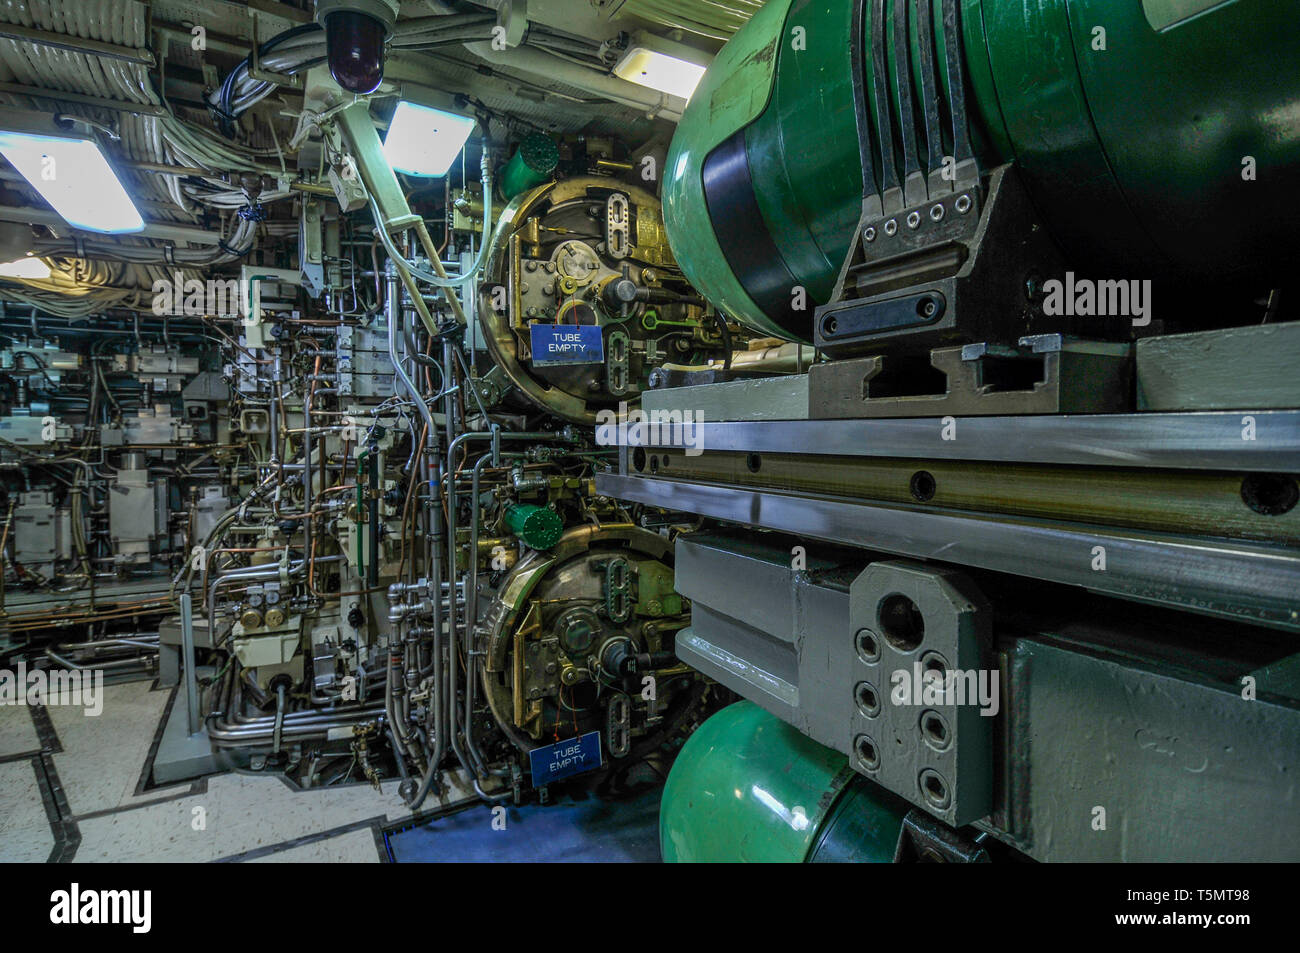 The torpedo room with Mk 48 ADCAP torpedoes, on the nuclear-powered fleet ballistic missile  submarine USS Ohio (SSBN-726/SSGN-726). - Stock Image